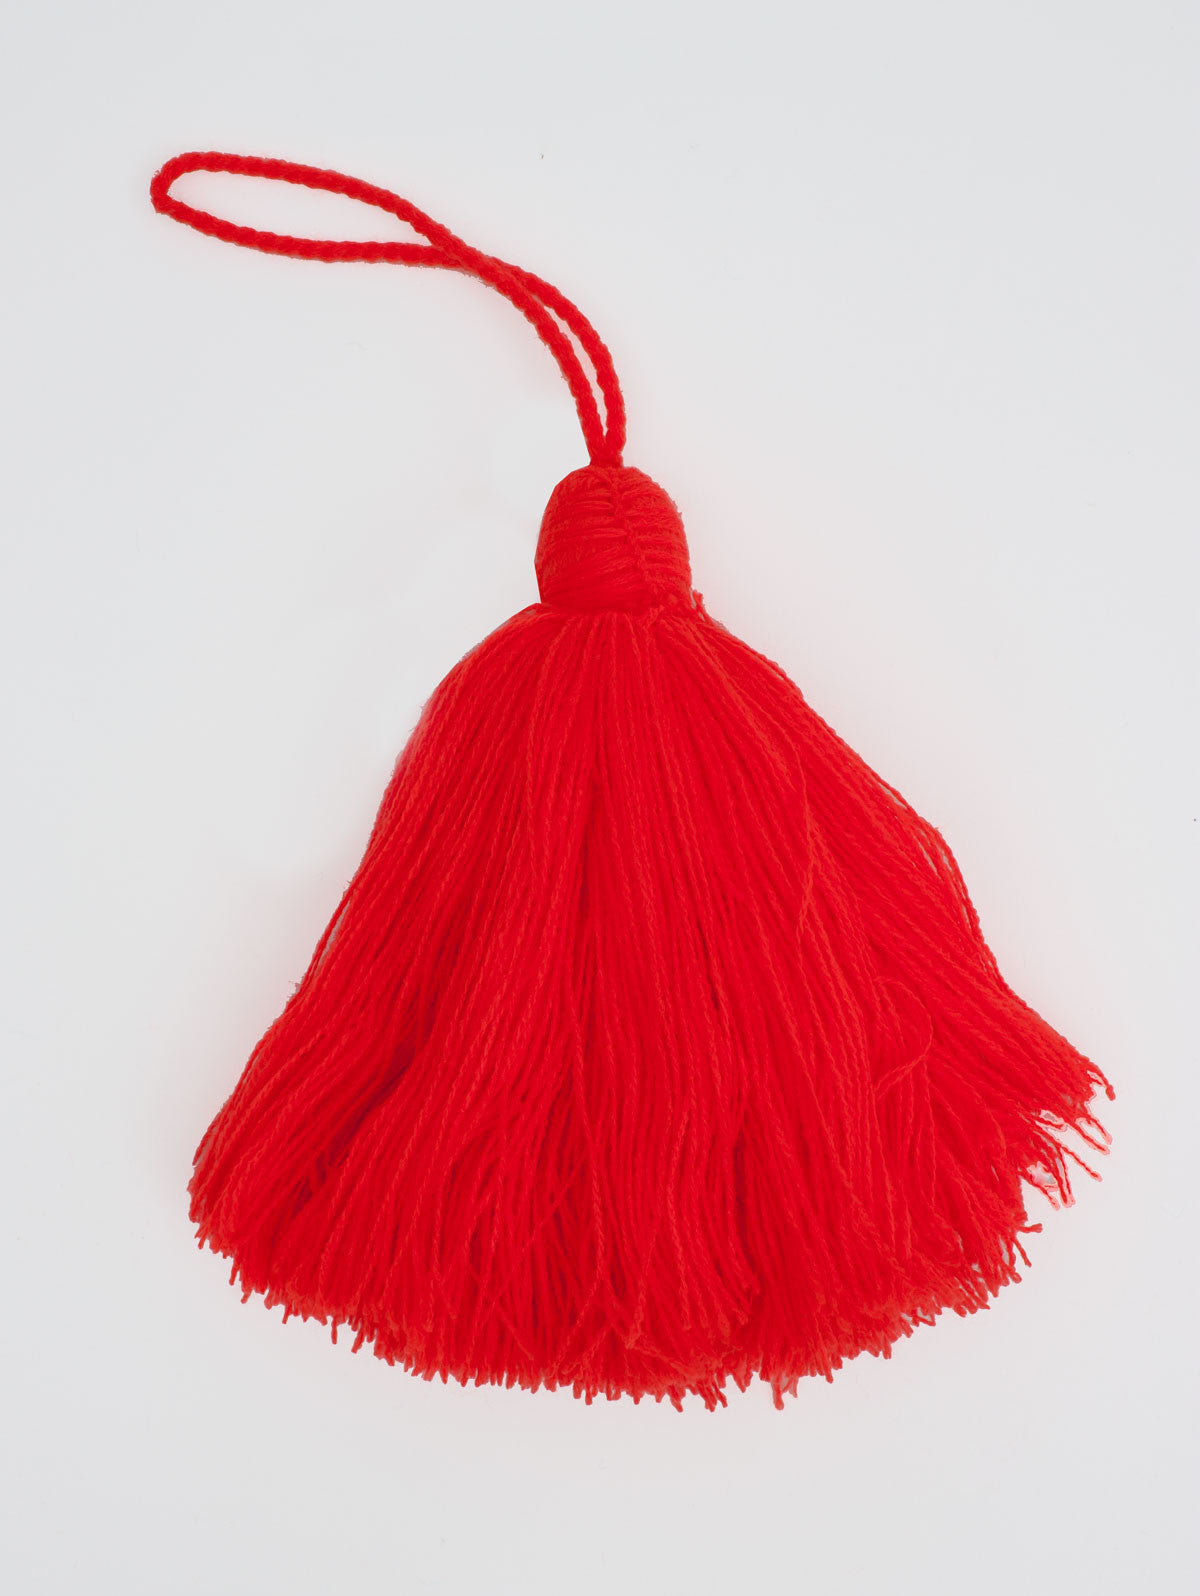 Giant Tassels, Large